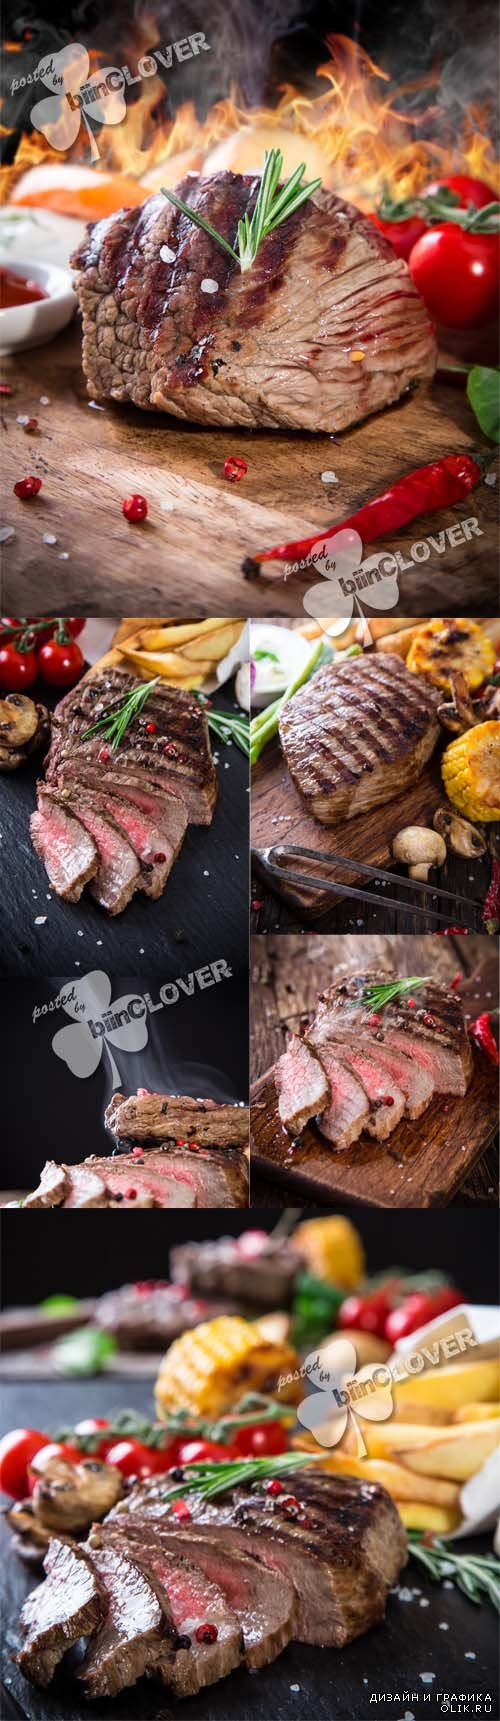 Grilled meat on wooden table 0579